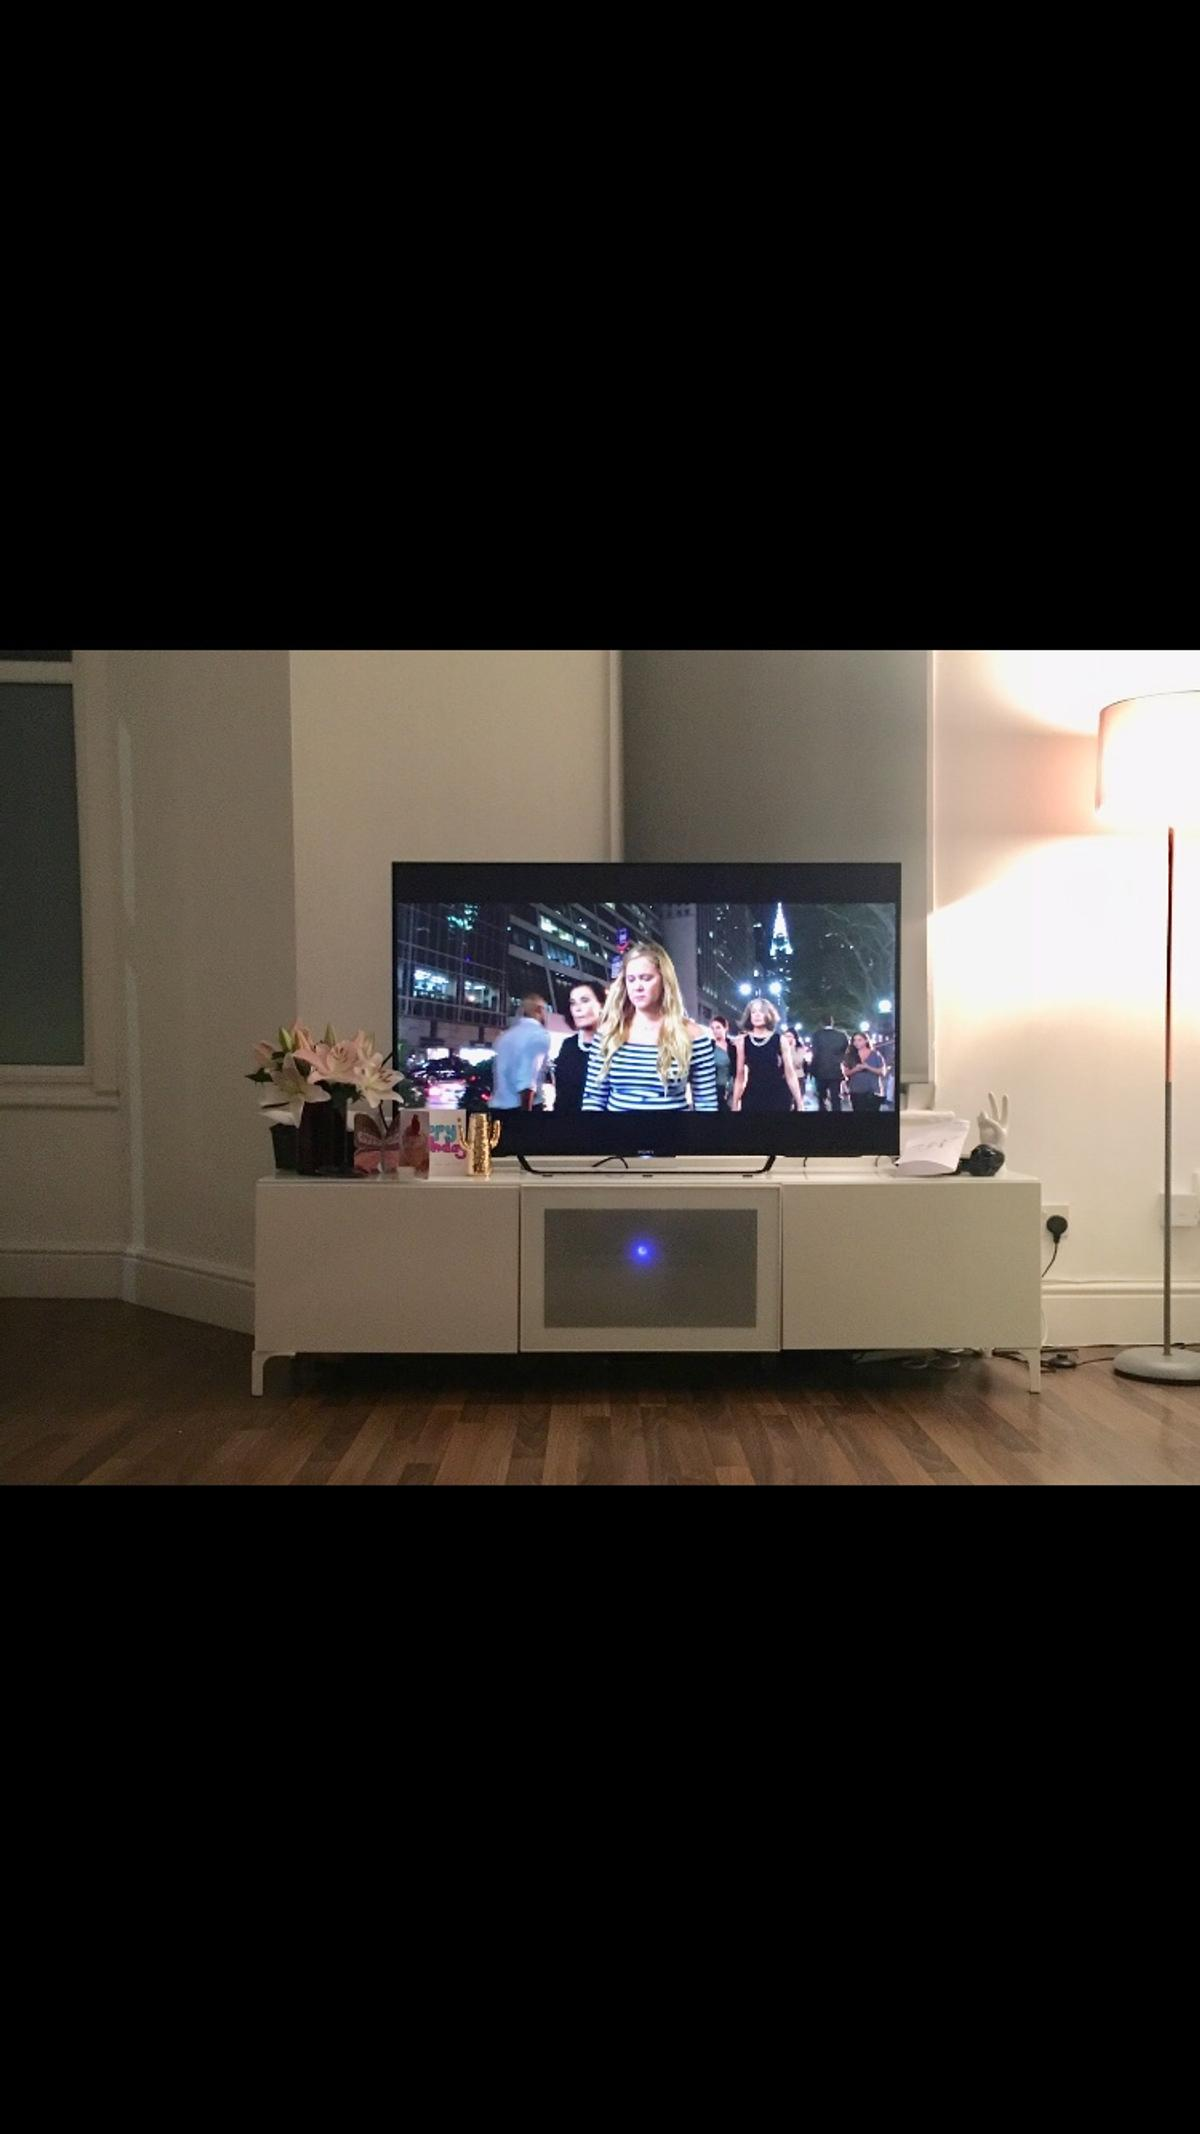 Remarkable Ikea Besta Tv Bench Unit In Kt6 London For 70 00 For Sale Alphanode Cool Chair Designs And Ideas Alphanodeonline